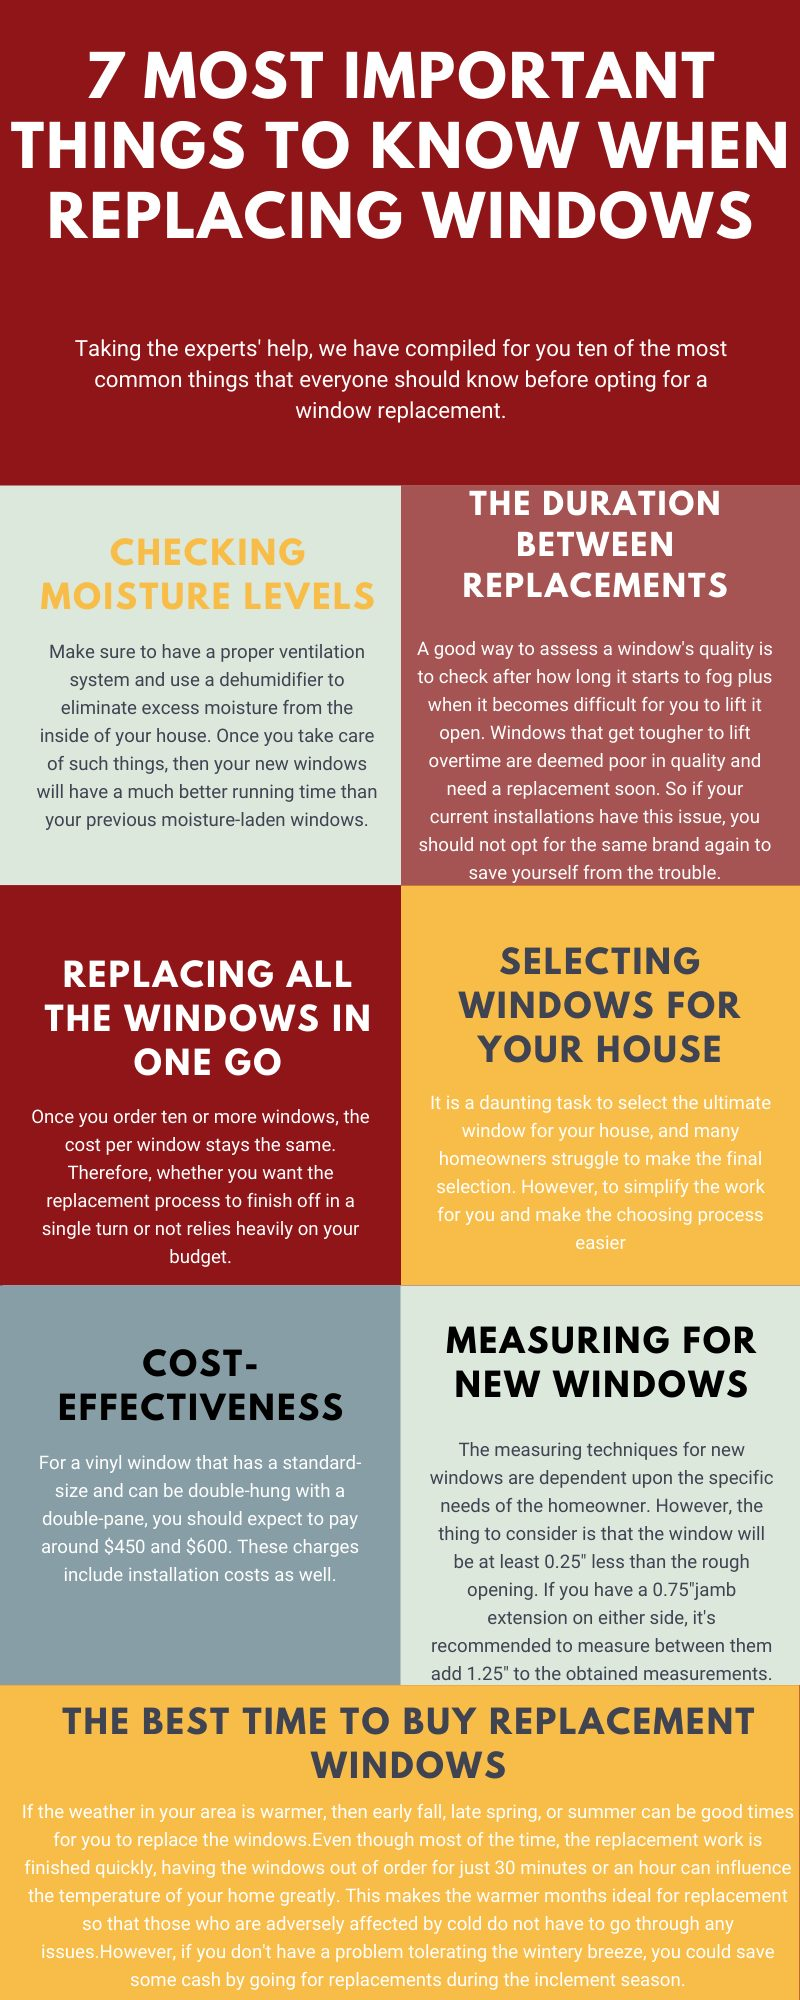 10 Important Things to Know When Replacing Windows